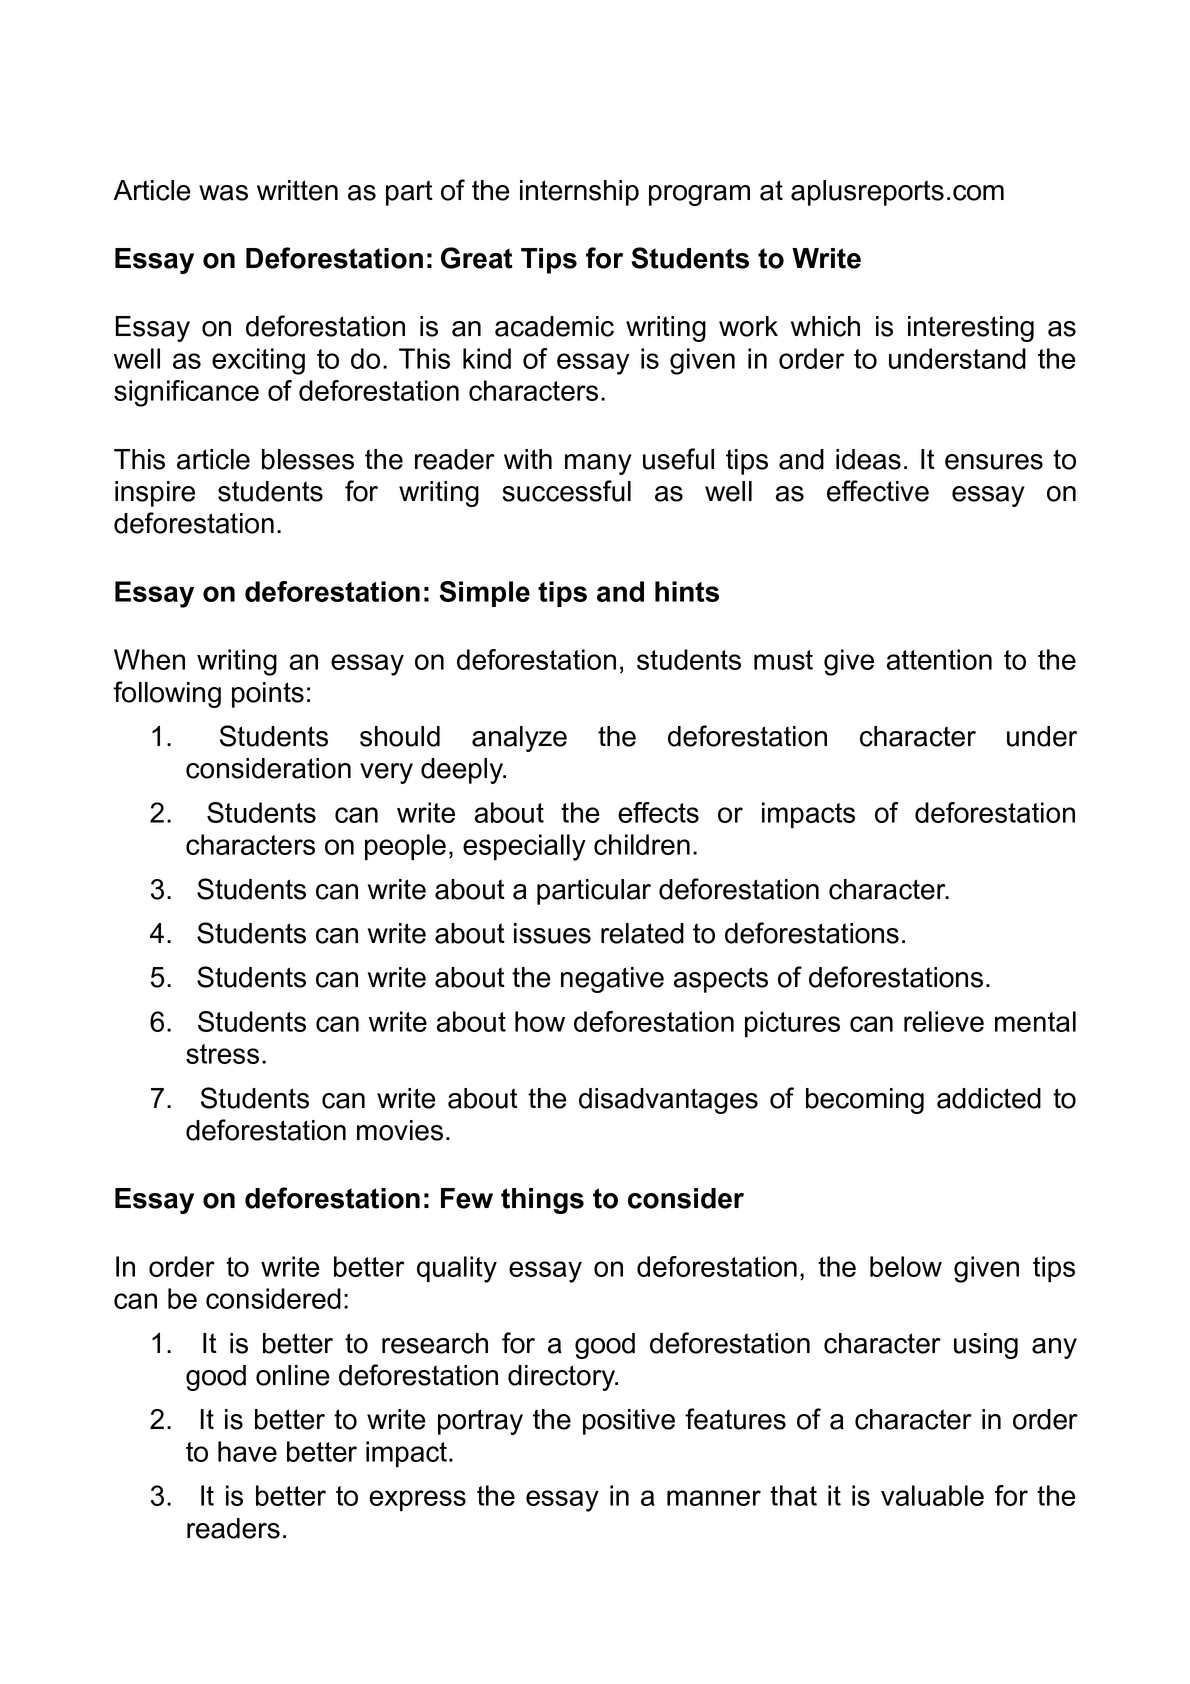 014 Essay Example Cause And Effect Stress Deforestation Argumentative On College Studen Students Exceptional Of Effects Among Full